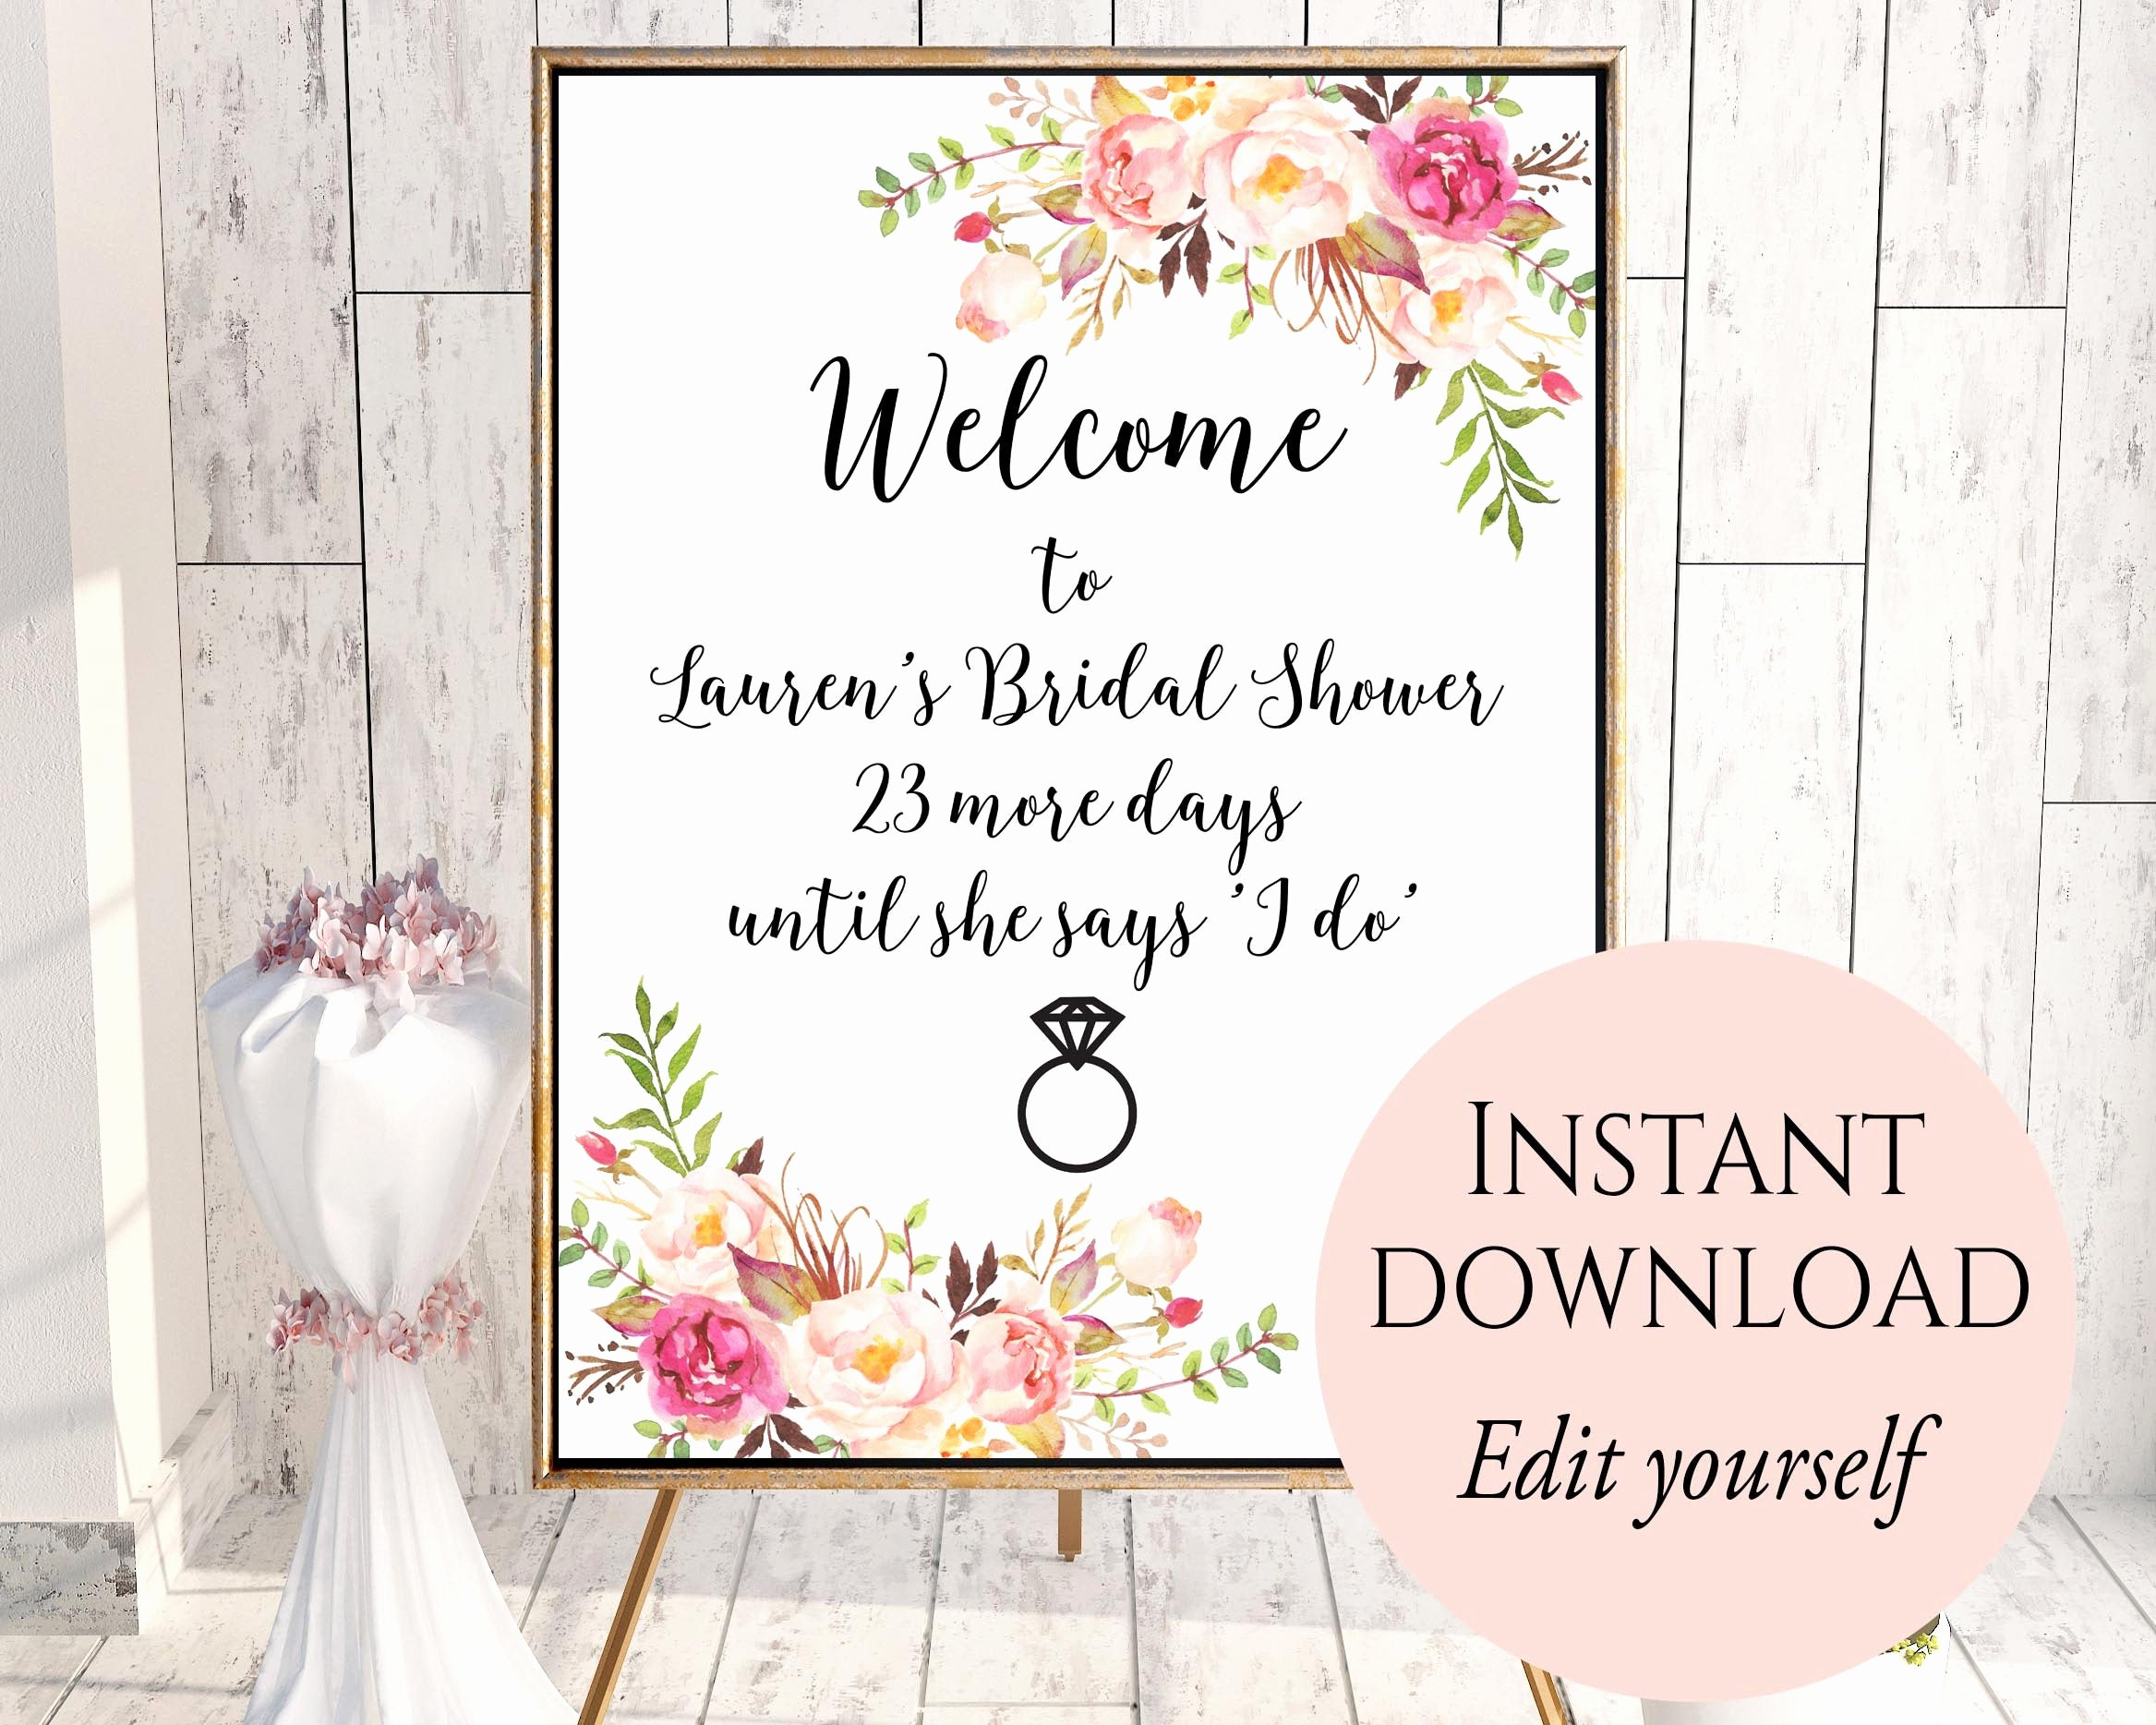 Bridal Shower Welcome Sign Template Lovely Wel E Sign Template Wel E Bridal Shower Sign Bridal